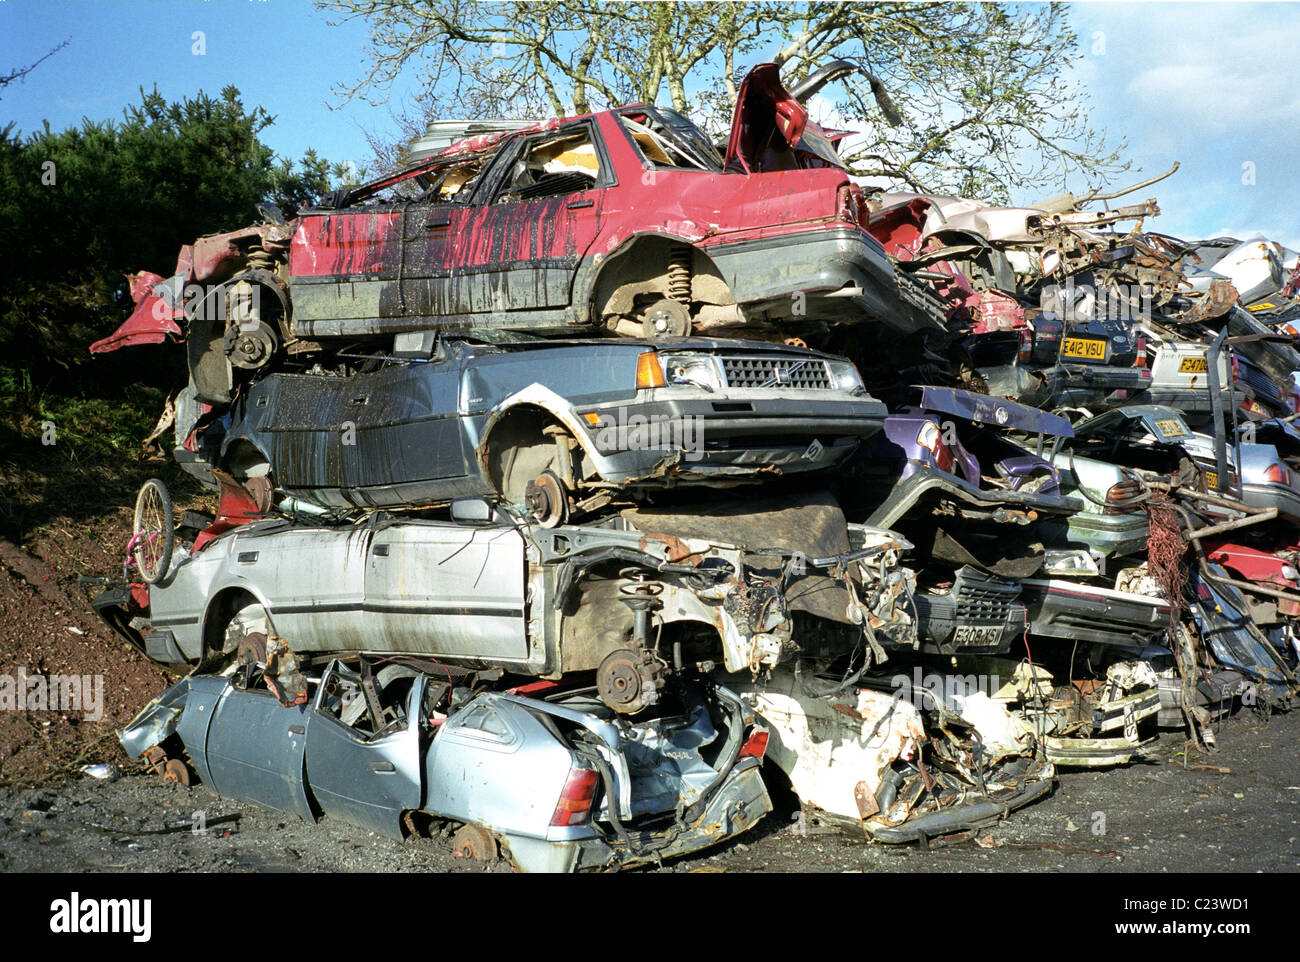 porsche panamera mobile with Stock Photo Car Wreckers Yard With Wrecked Cars Piled On Top Of Each Other 35735869 on 2017 Porsche Panamera Turbo First Drive Review in addition Wallpaper 06 also Porsche Cayenne Coupe Electric Suv Match Audi E Tron Quattro moreover Fond ecran 10139 Voyage en train a la montagne besides Porsche Cayenne Wallpapers.